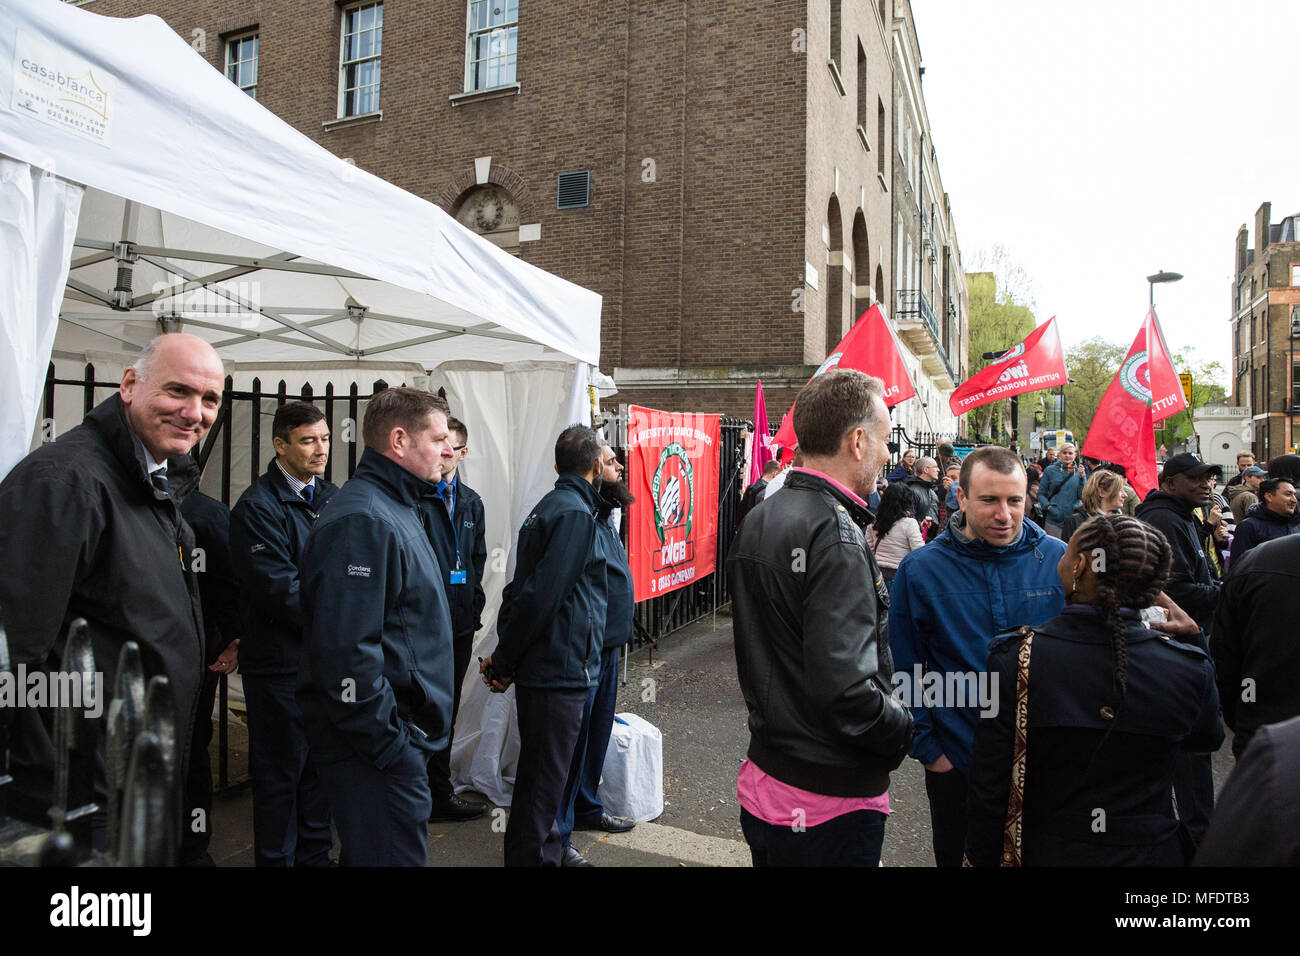 London, UK. 25th April, 2018. University of London security guards observe Independent Workers Union of Great Britain (IWGB) members protesting outside University of London Senate House in solidarity with workers employed by outsourcing companies contracted to the university currently striking to demand equal terms and conditions with those directly employed by the university. Cleaners, porters, security officers, receptionists, gardeners, post room staff and audiovisual staff have joined the strike after a near unanimous vote for industrial action. Credit: Mark Kerrison/Alamy Live News Stock Photo